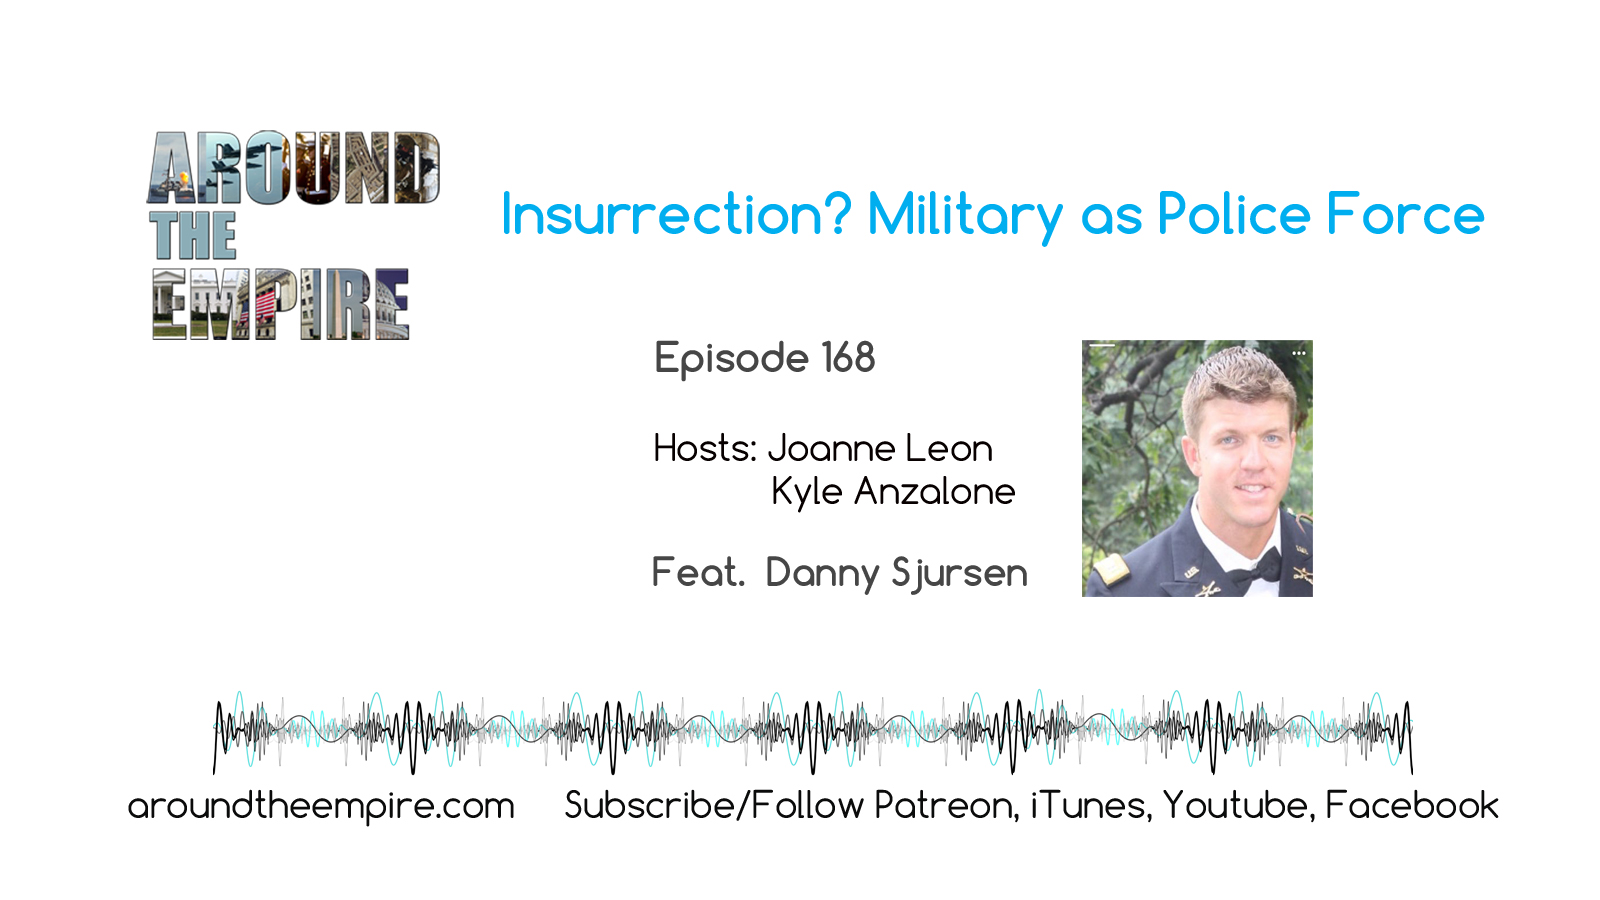 Ep 168 Insurrection? Military as Police Force feat Danny Sjursen (Swapcast)